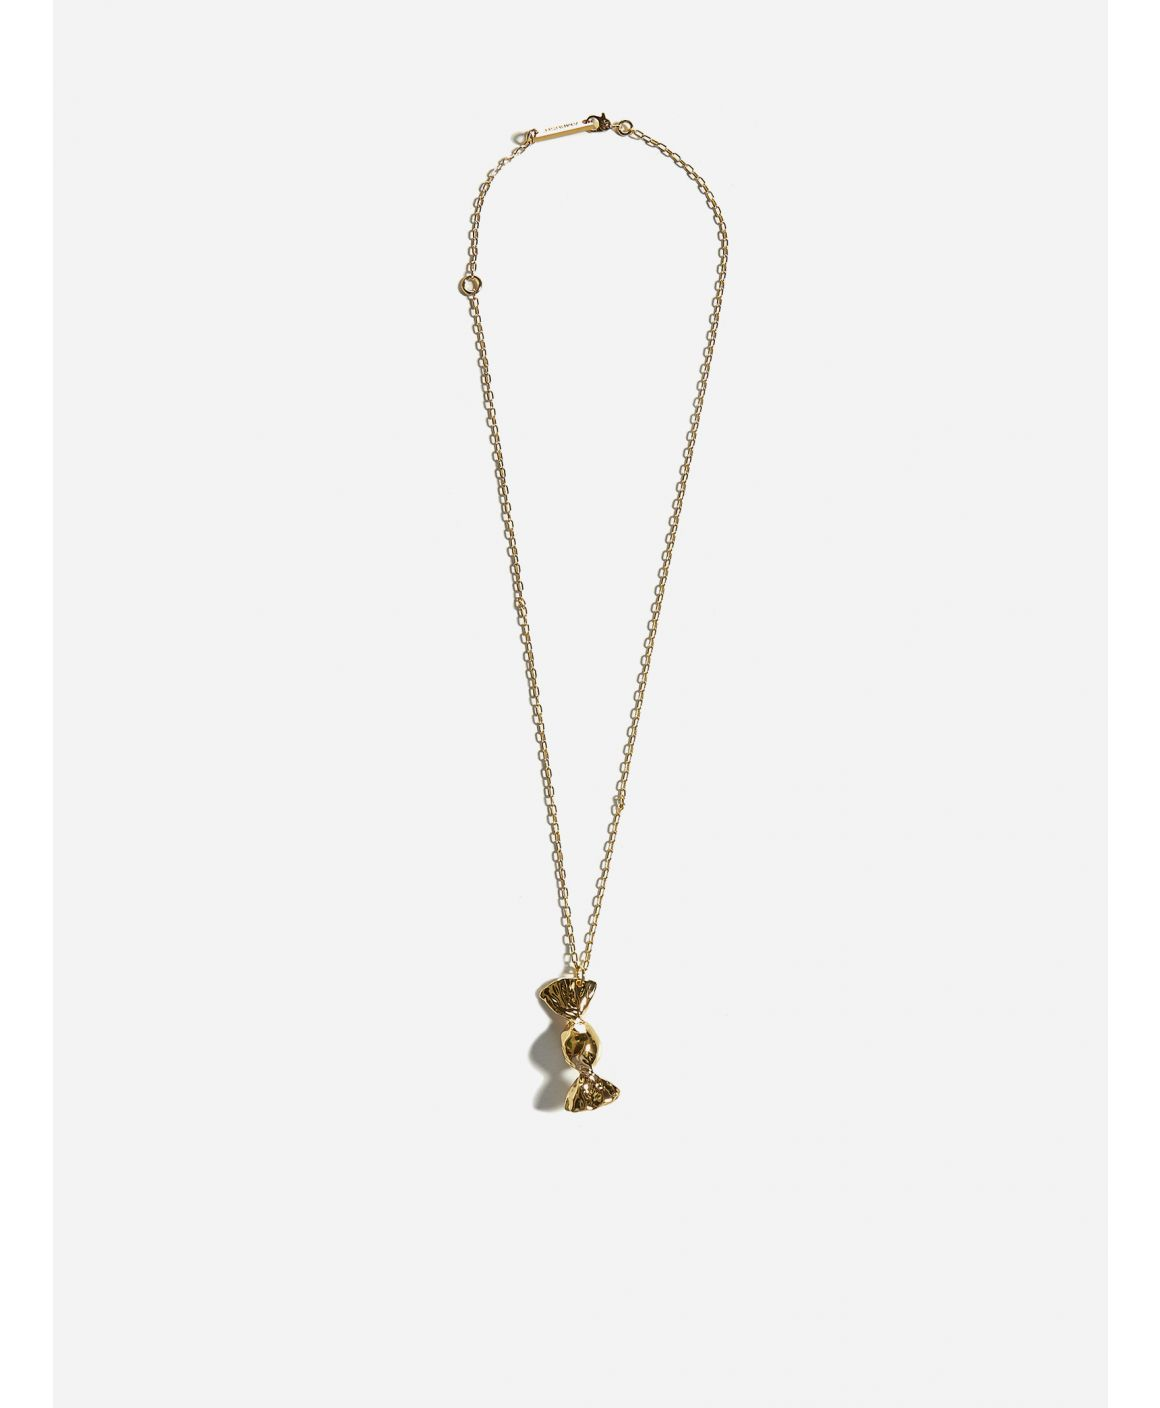 Candy Charm silver necklace